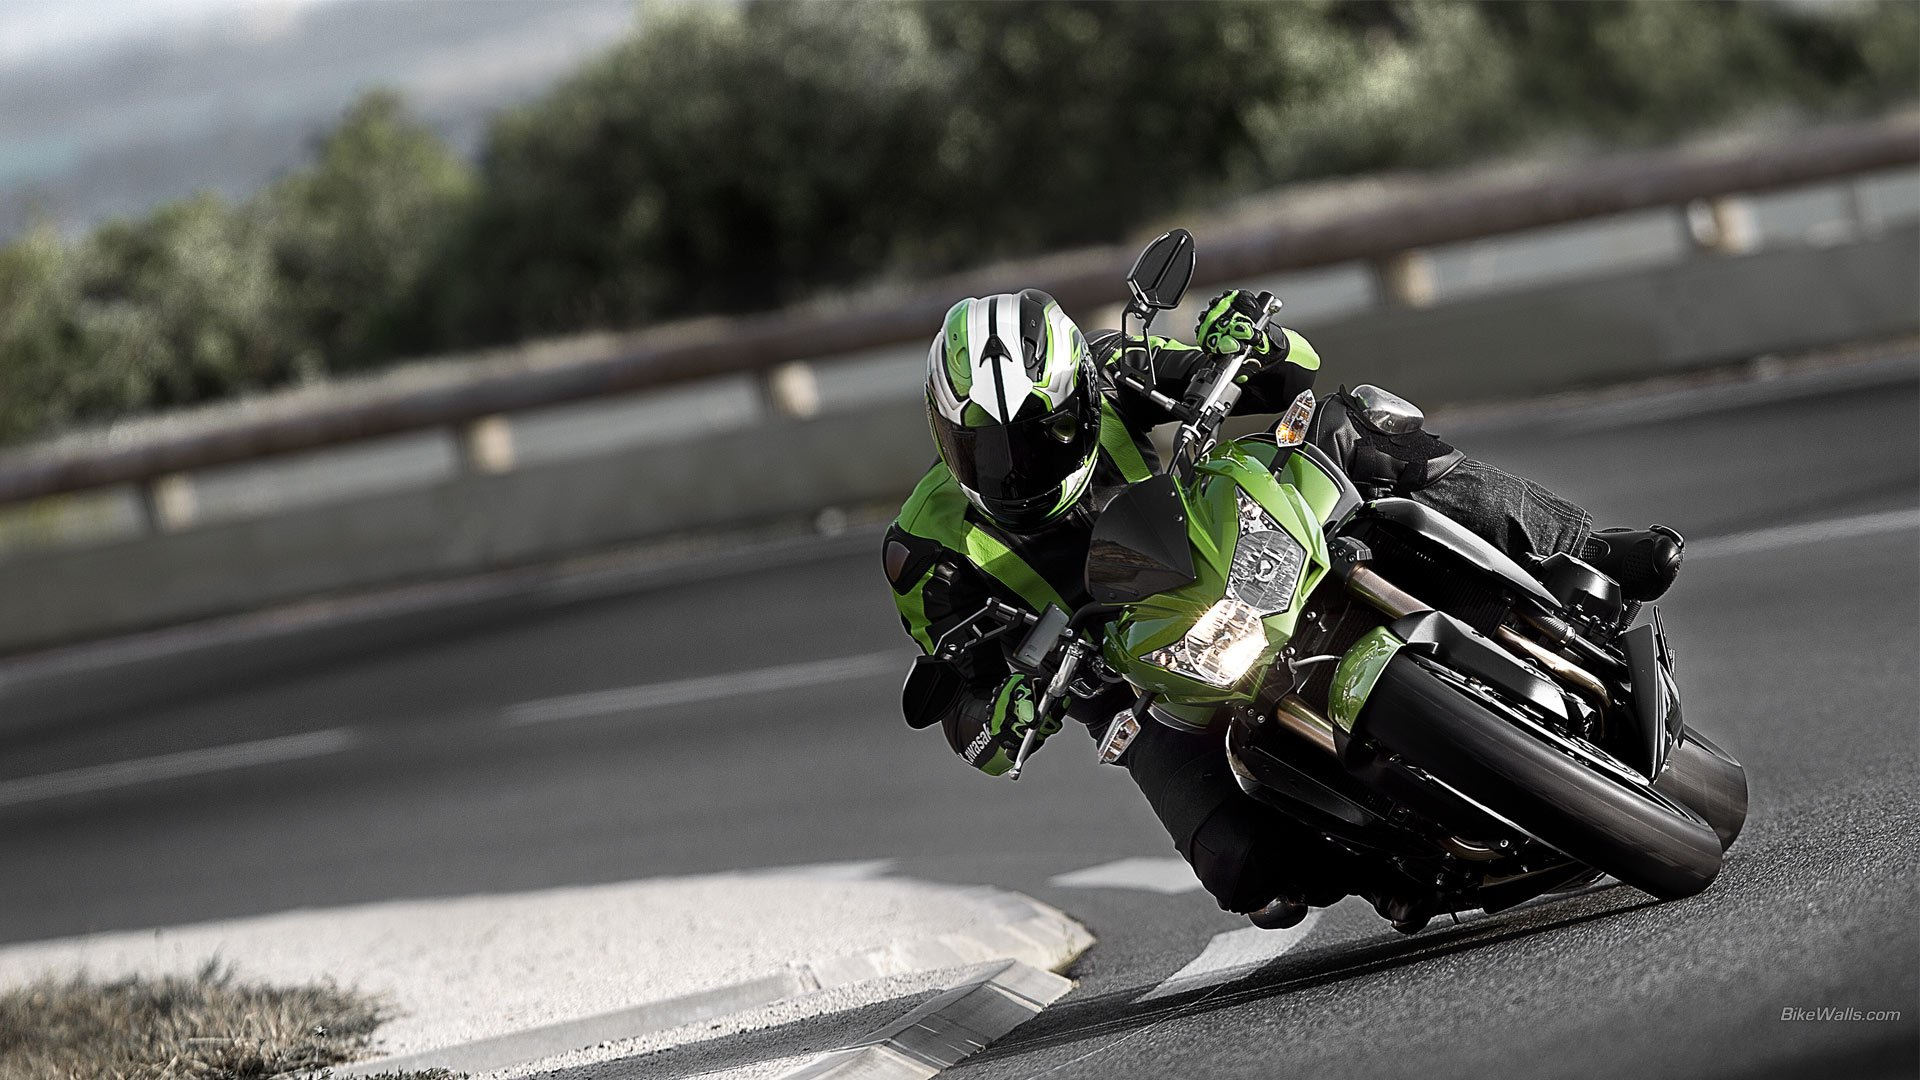 Kawasaki Z800 HD Wallpaper